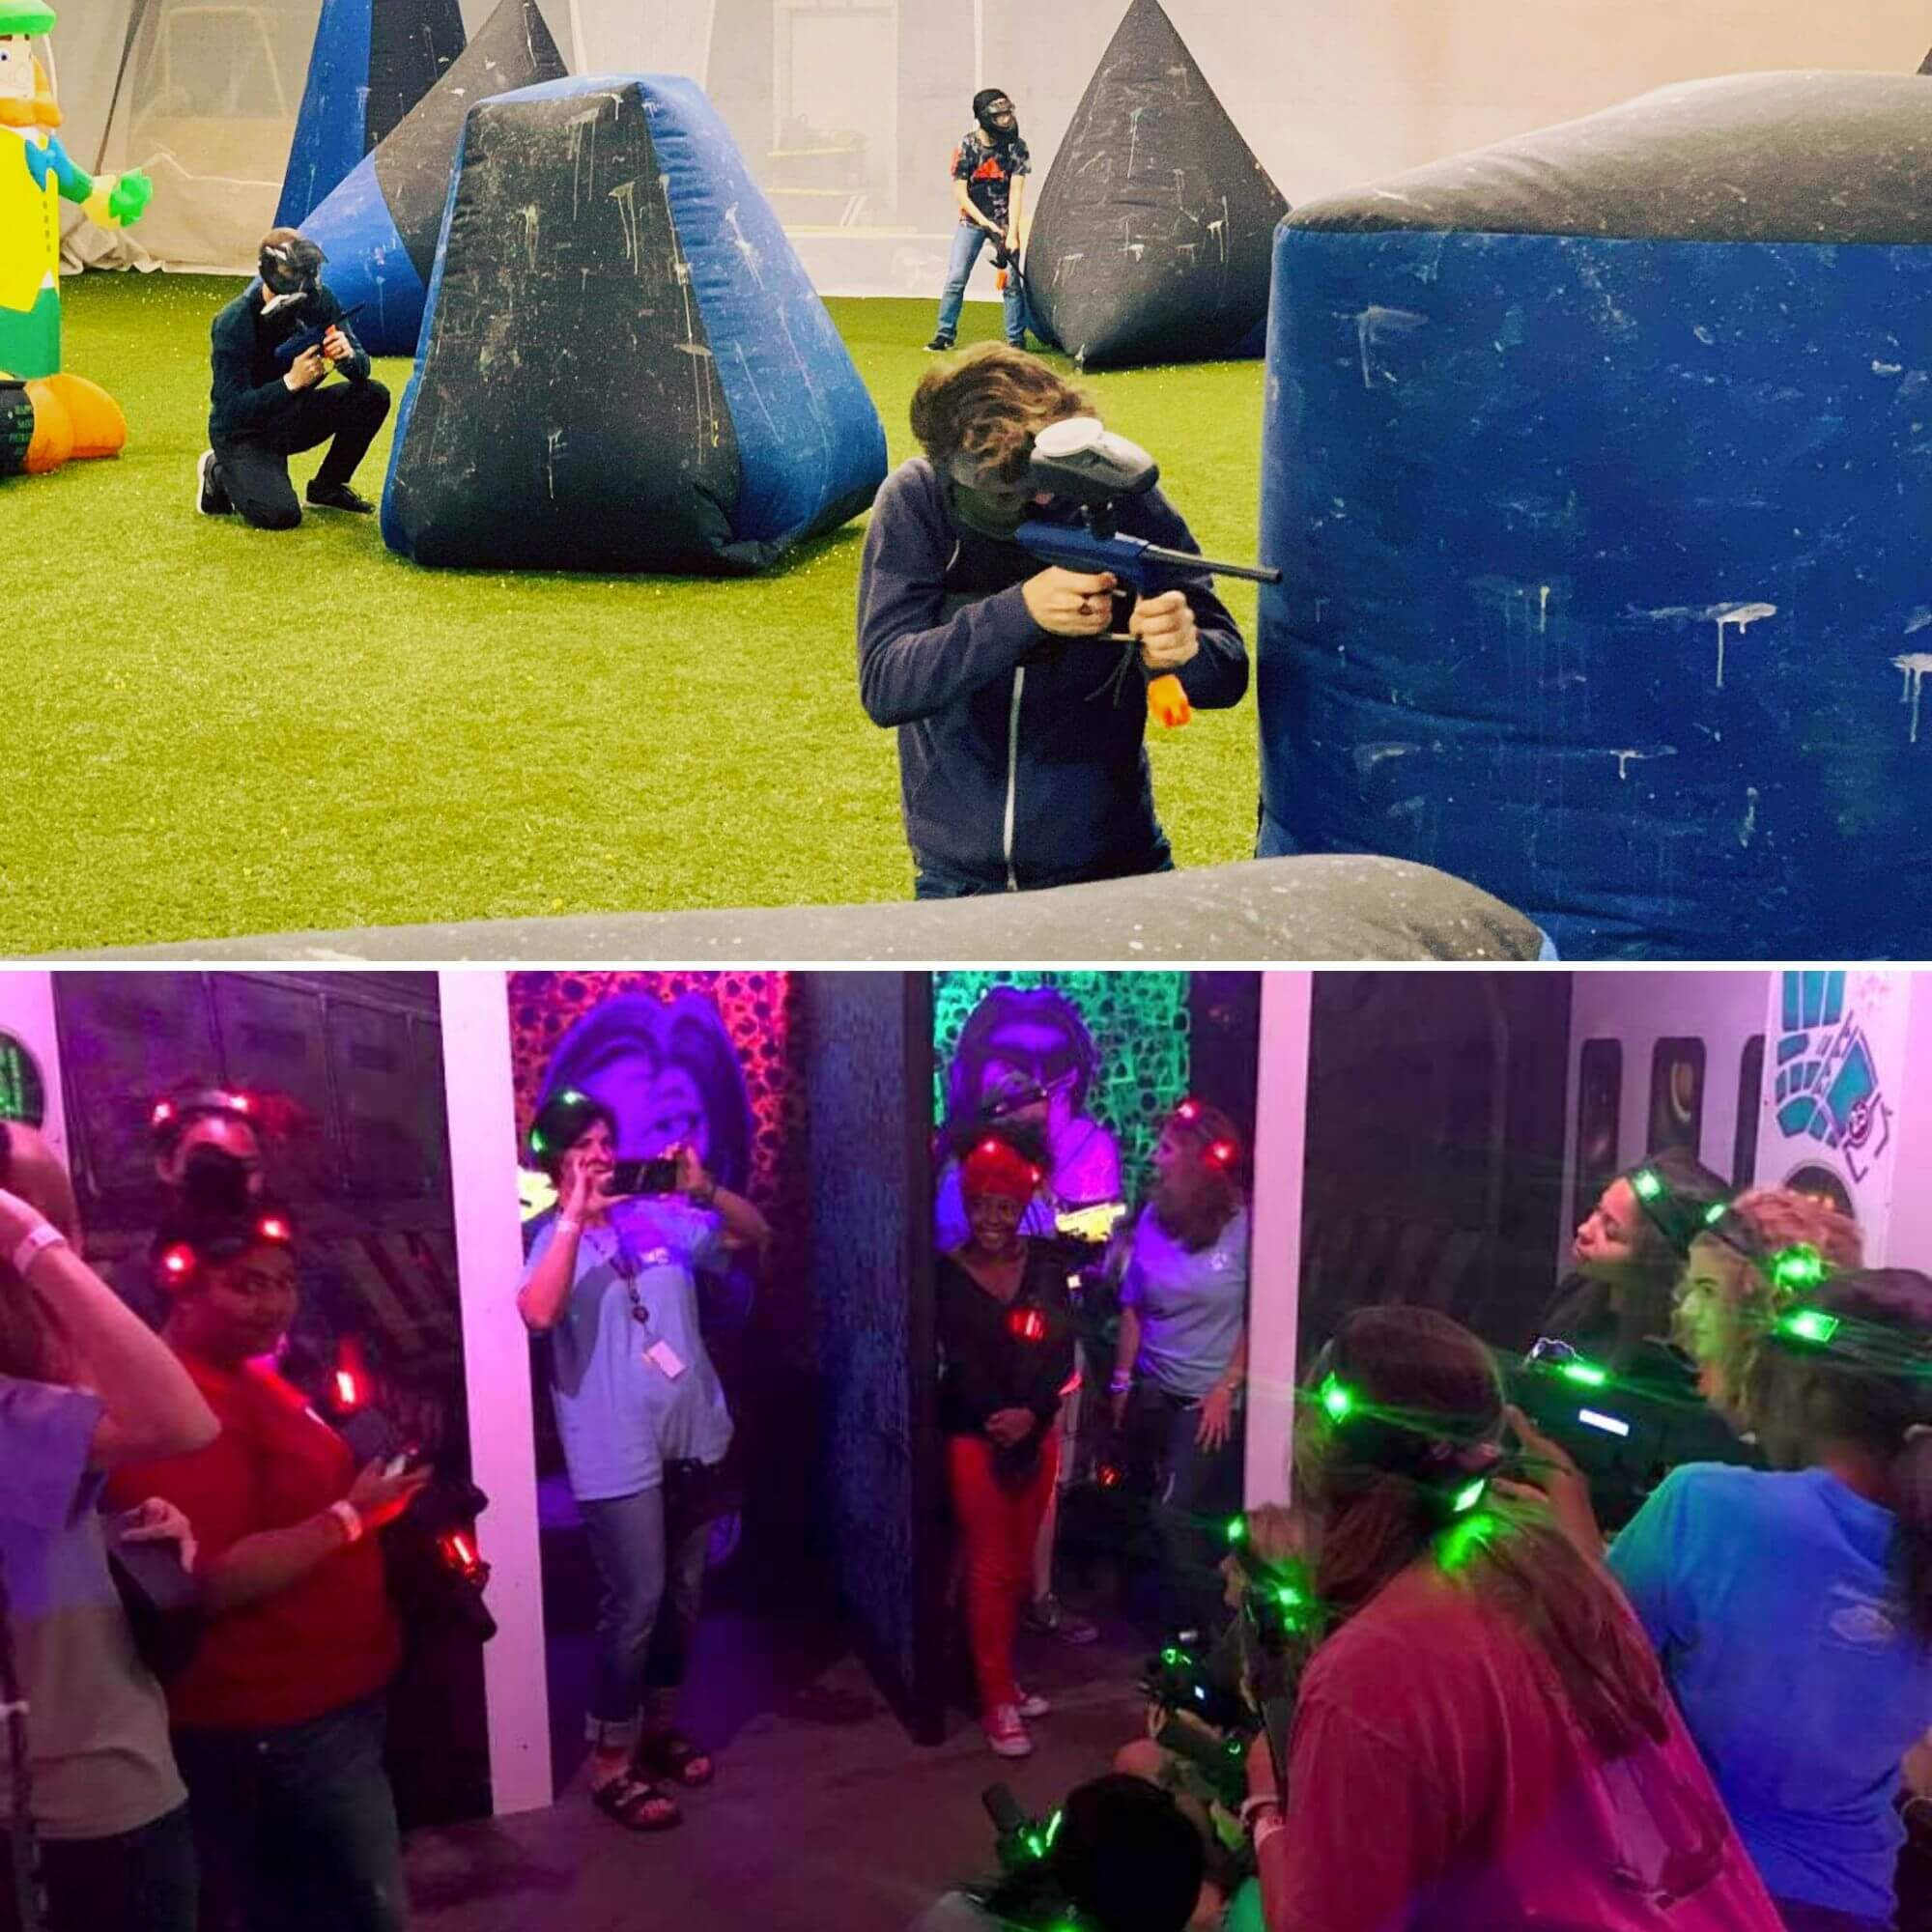 Indoor paintball and Laser Tag games